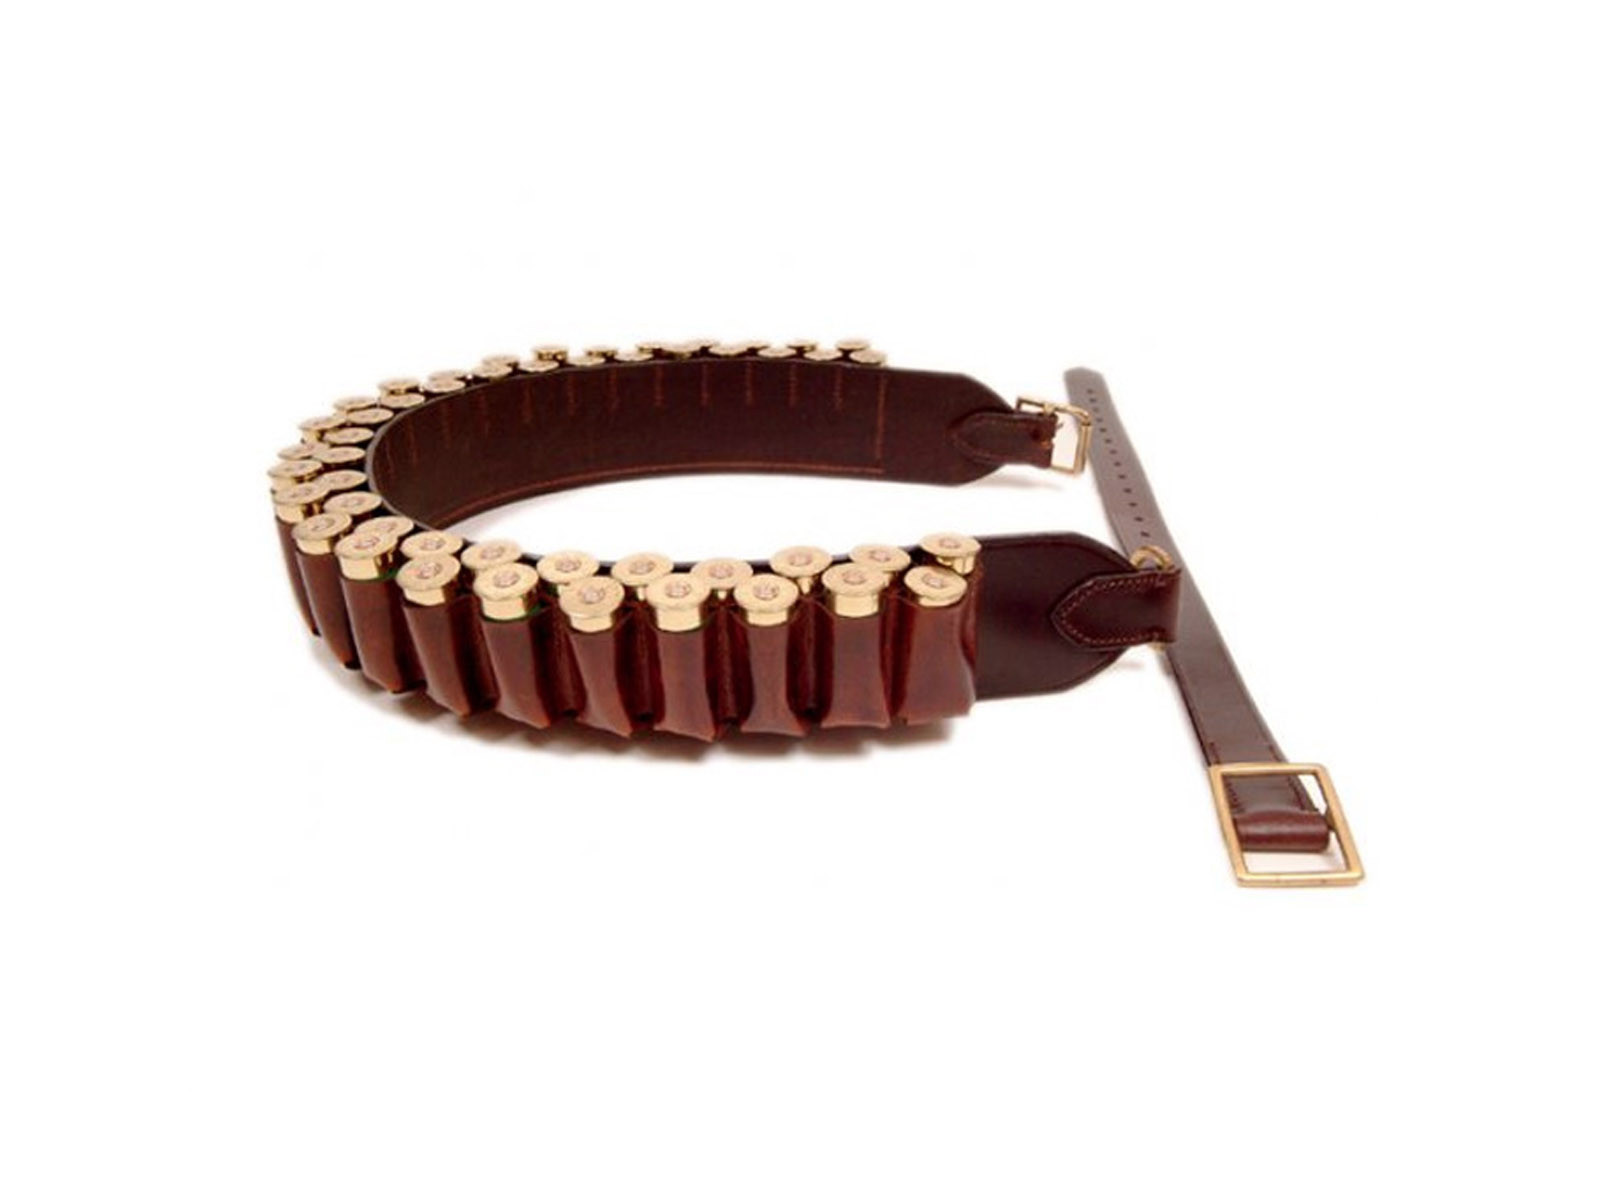 Chelsham Leather Closed 49 loop Cartridge Belt 12G